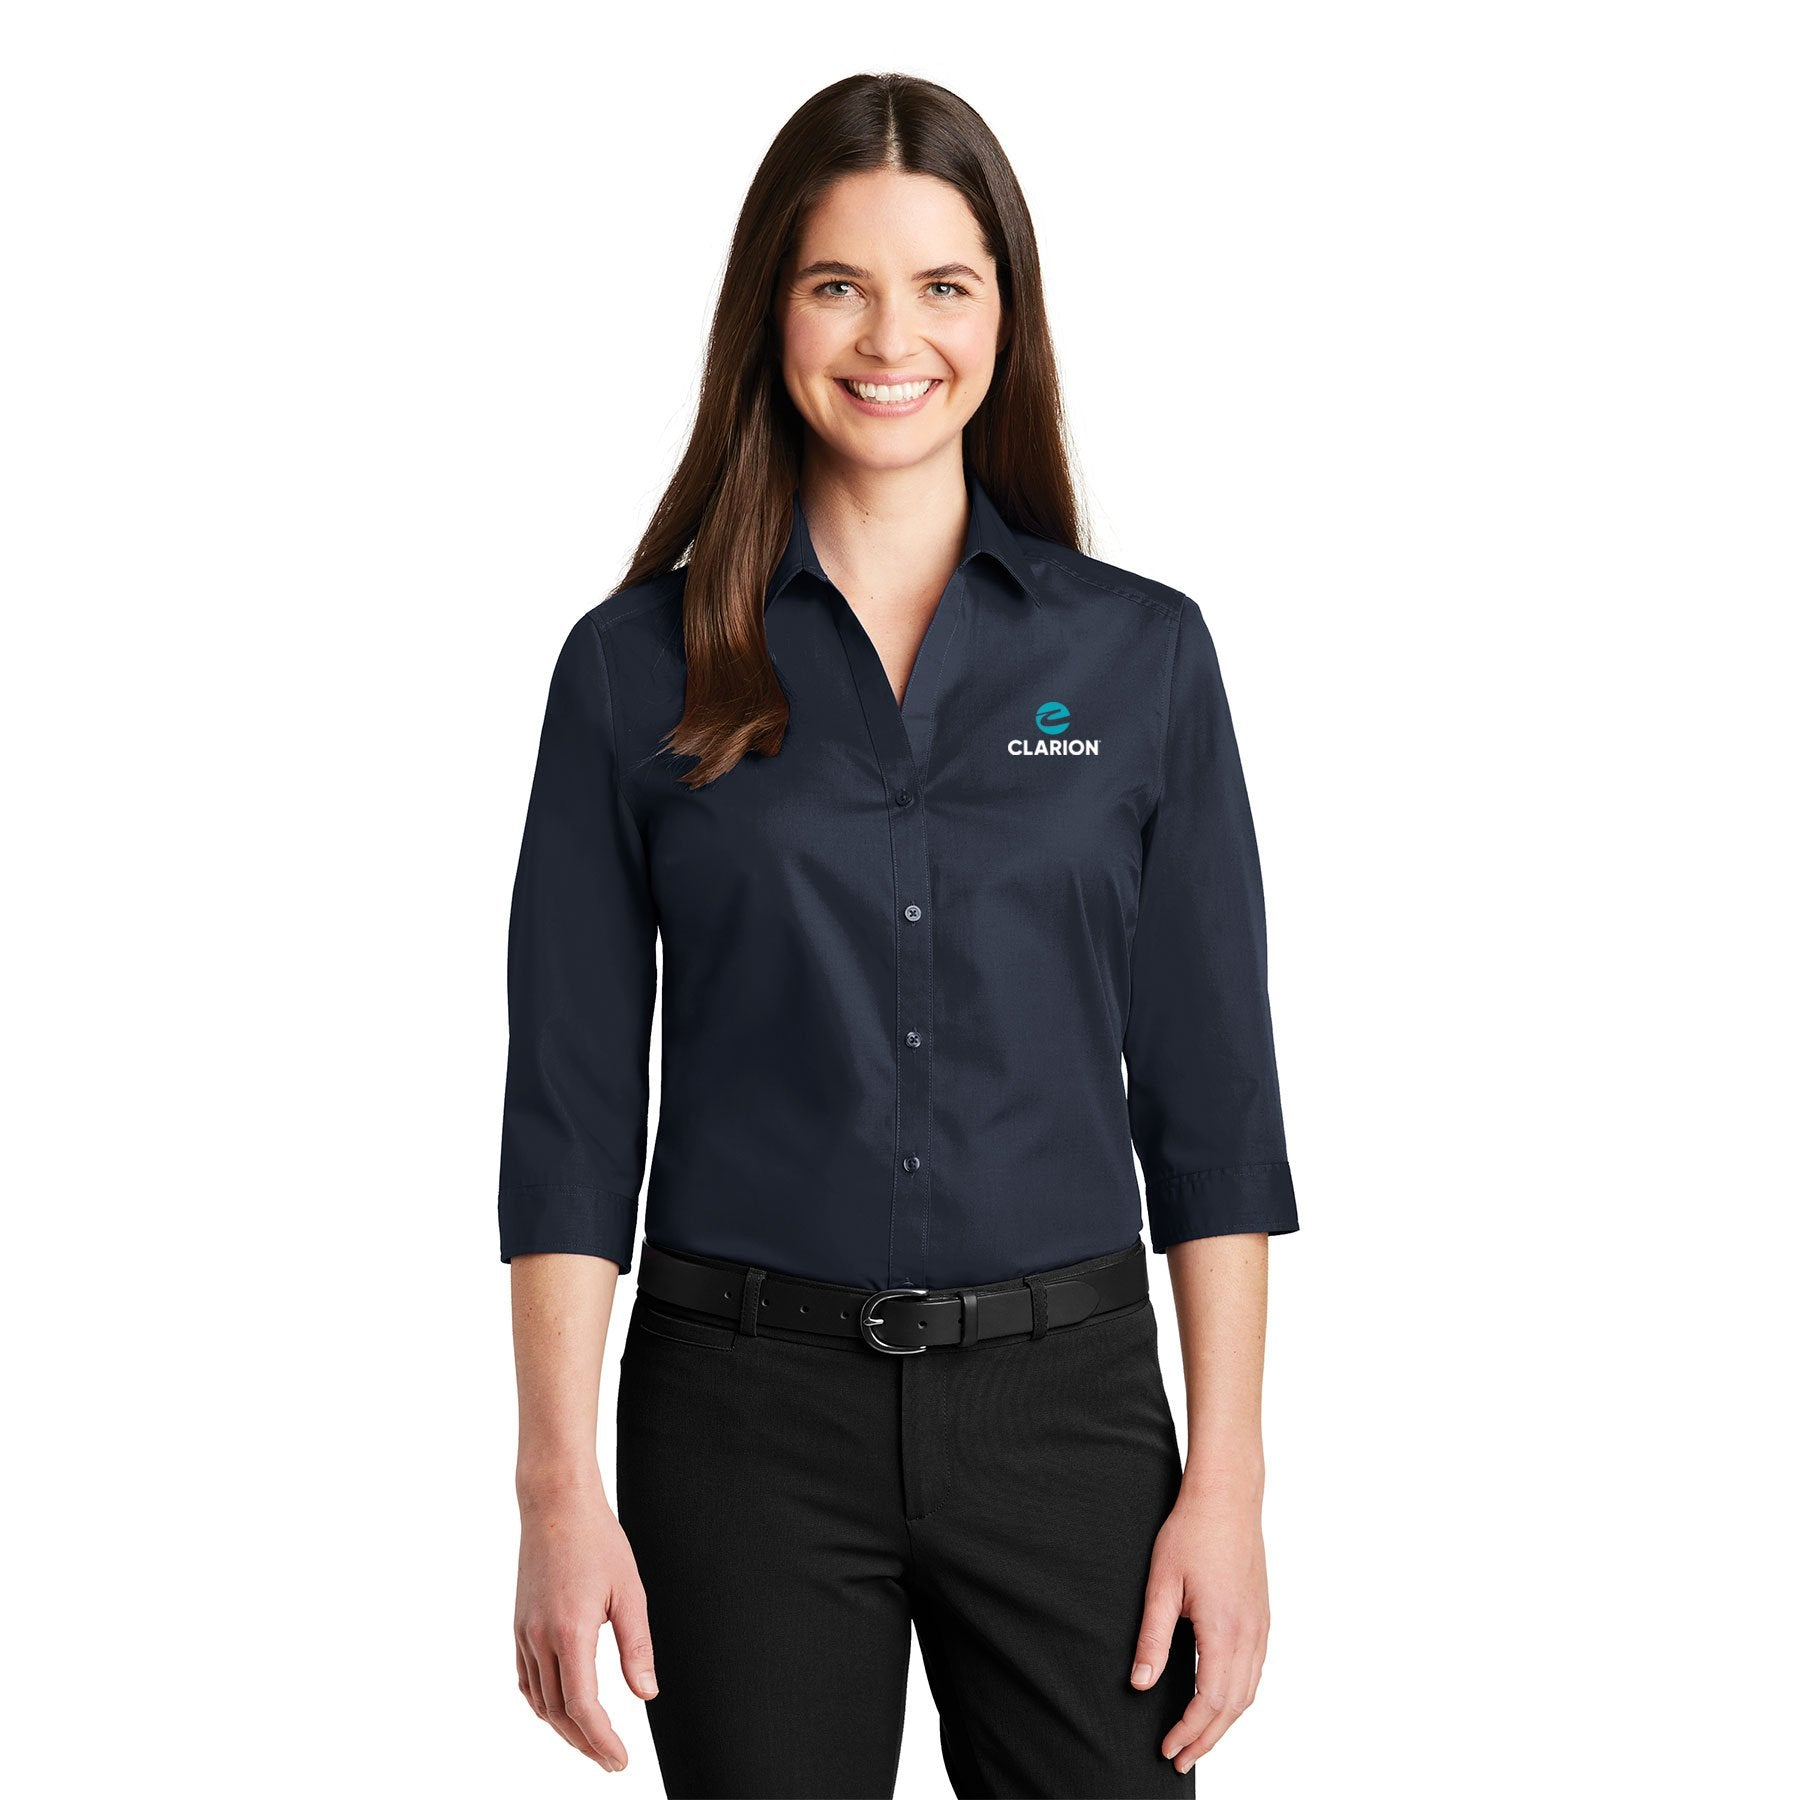 Women's 3/4-Sleeve Carefree Poplin Shirt - Clarion